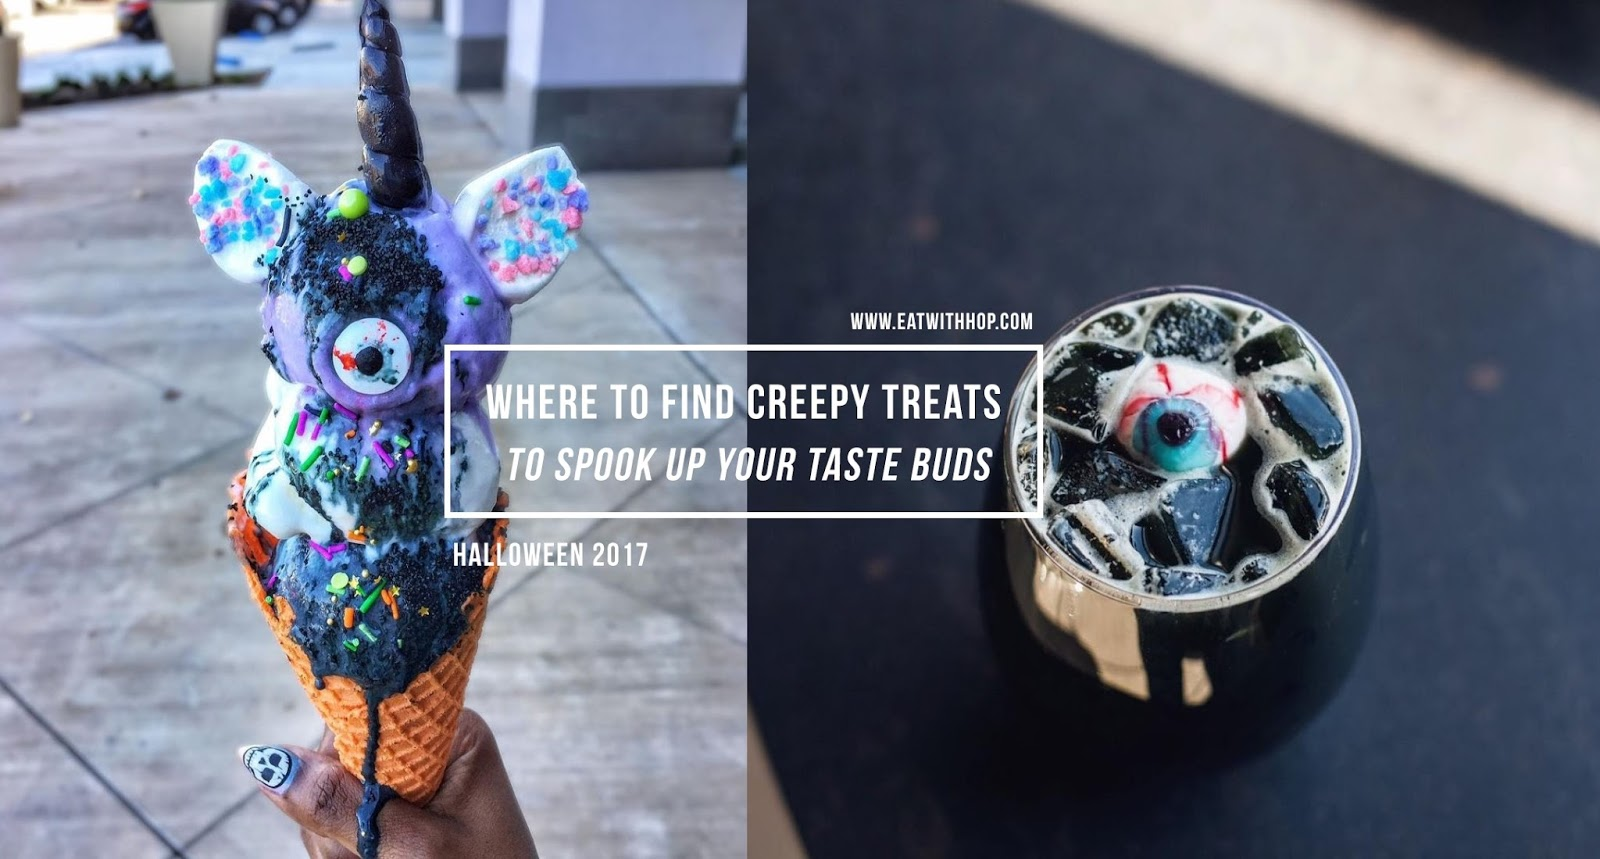 GUIDE | Where To Find Creepy Treats To Spook Up Your Taste Buds This Halloween